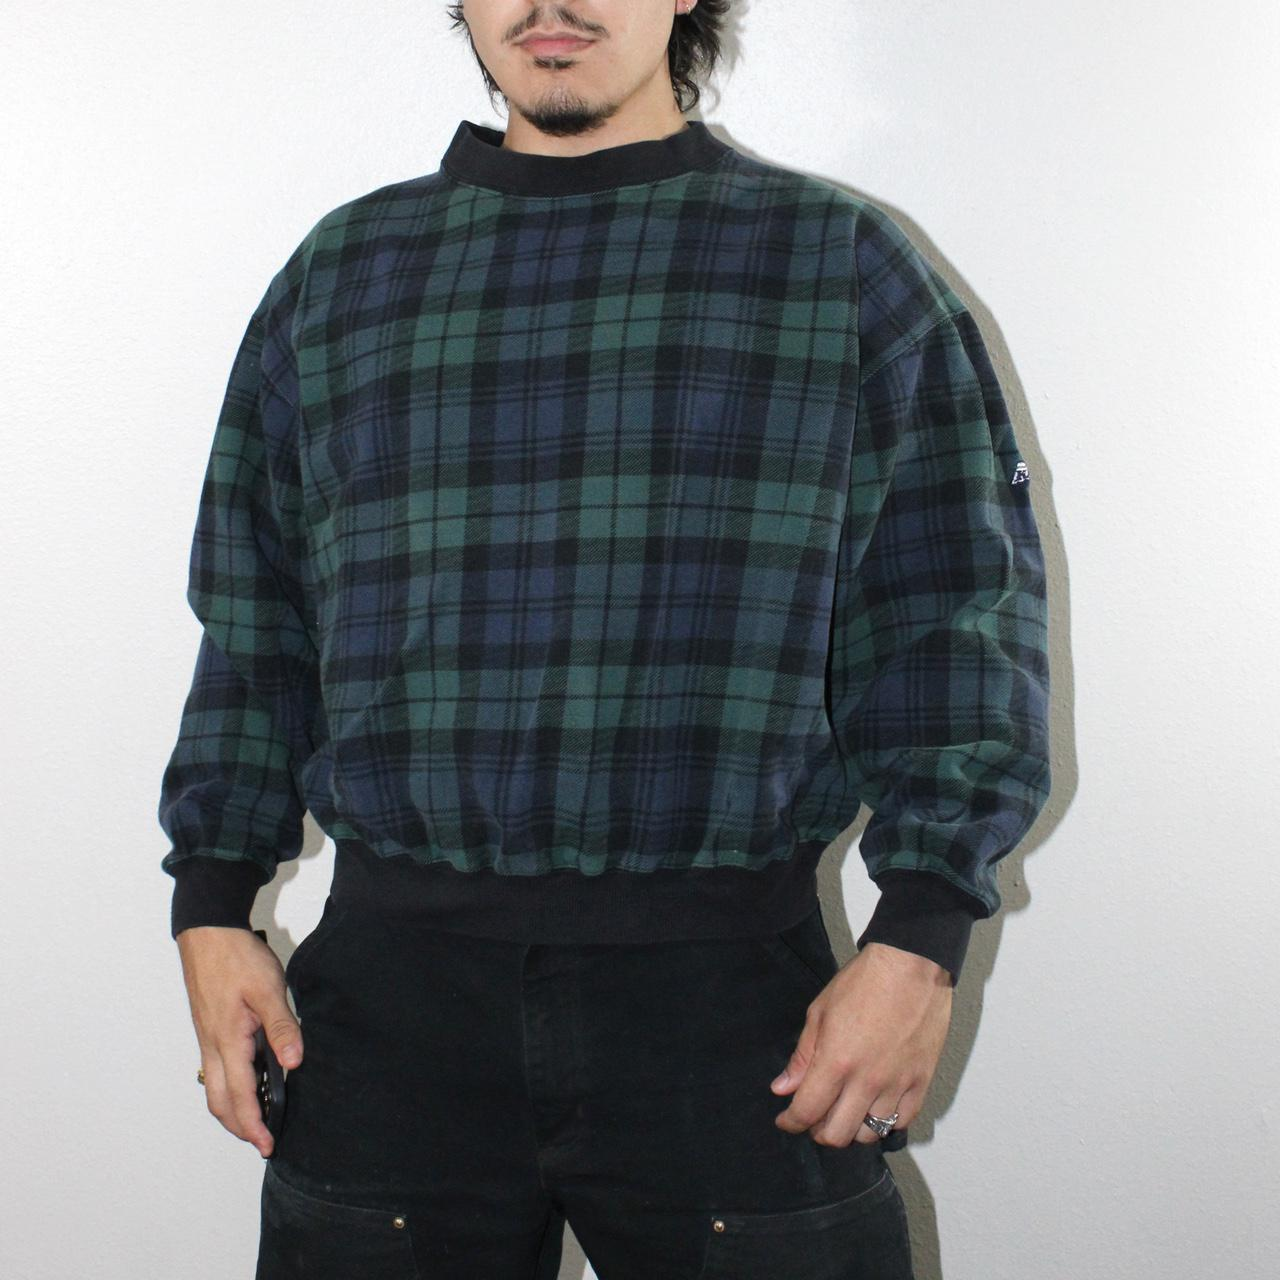 Product Image 1 - Vintage Plaid Patterned Sweater   Excellent